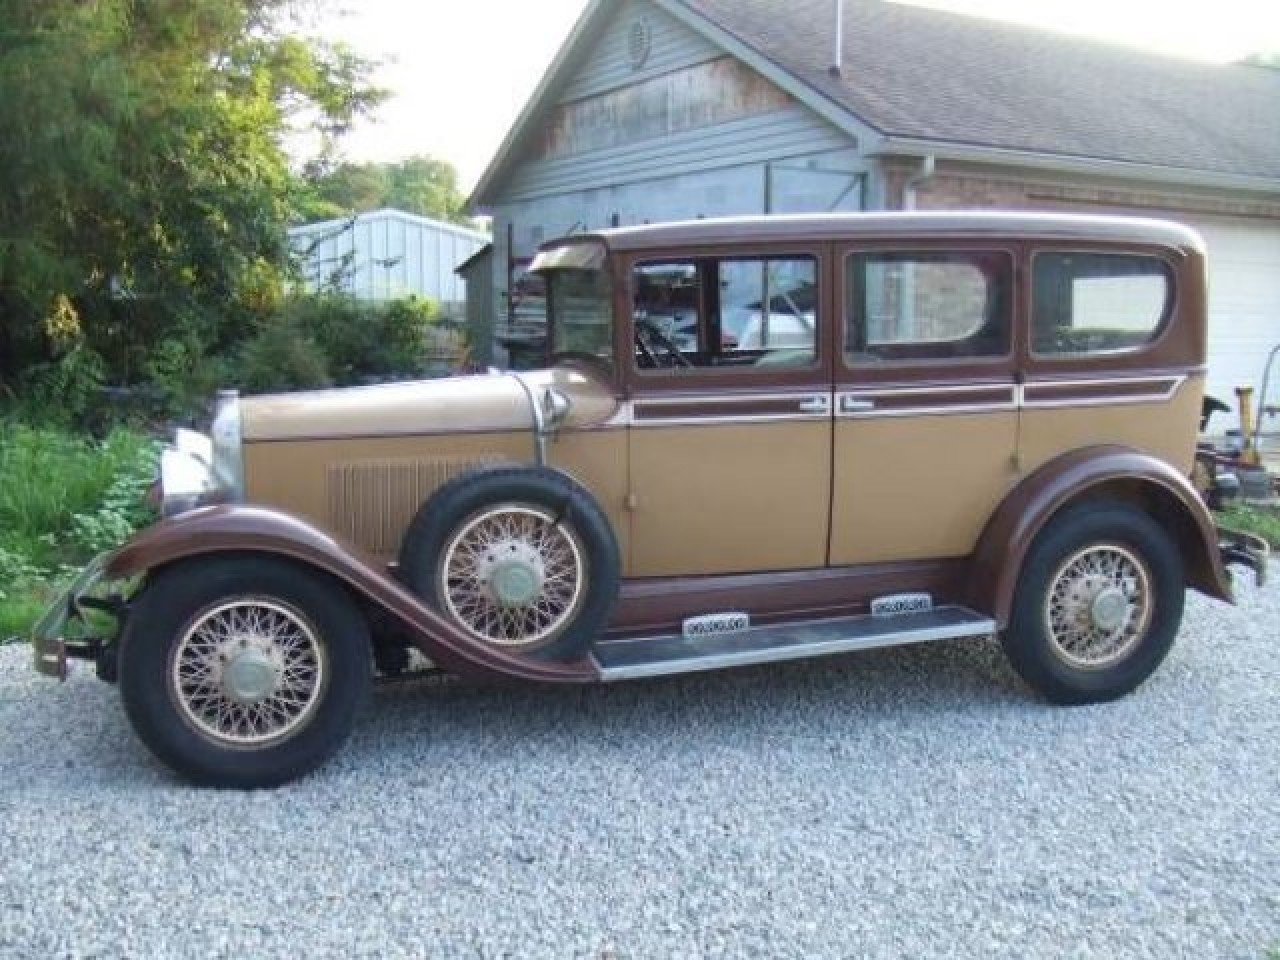 Flying Car For Sale Now >> 1928 Reo Flying Cloud for sale near Cadillac, Michigan 49601 - Classics on Autotrader